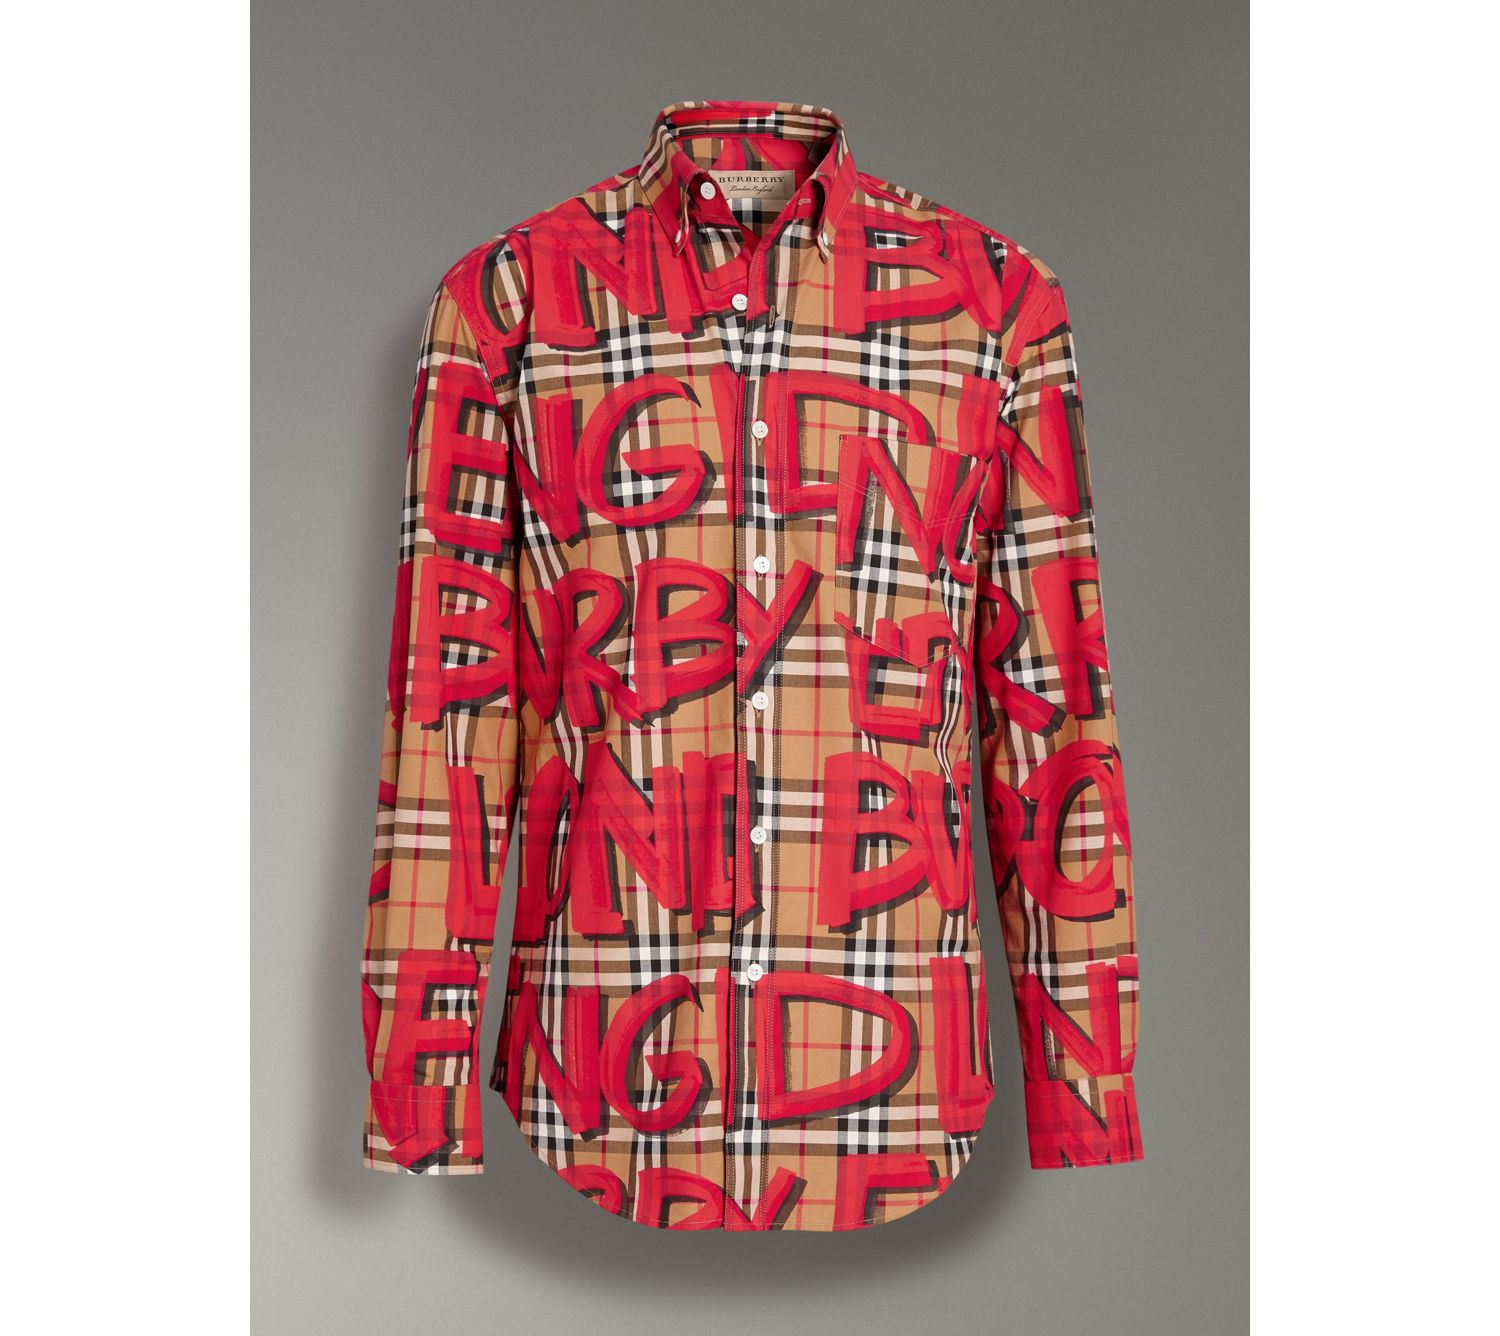 Graffiti Print Vintage Check Shirt in Bright Red